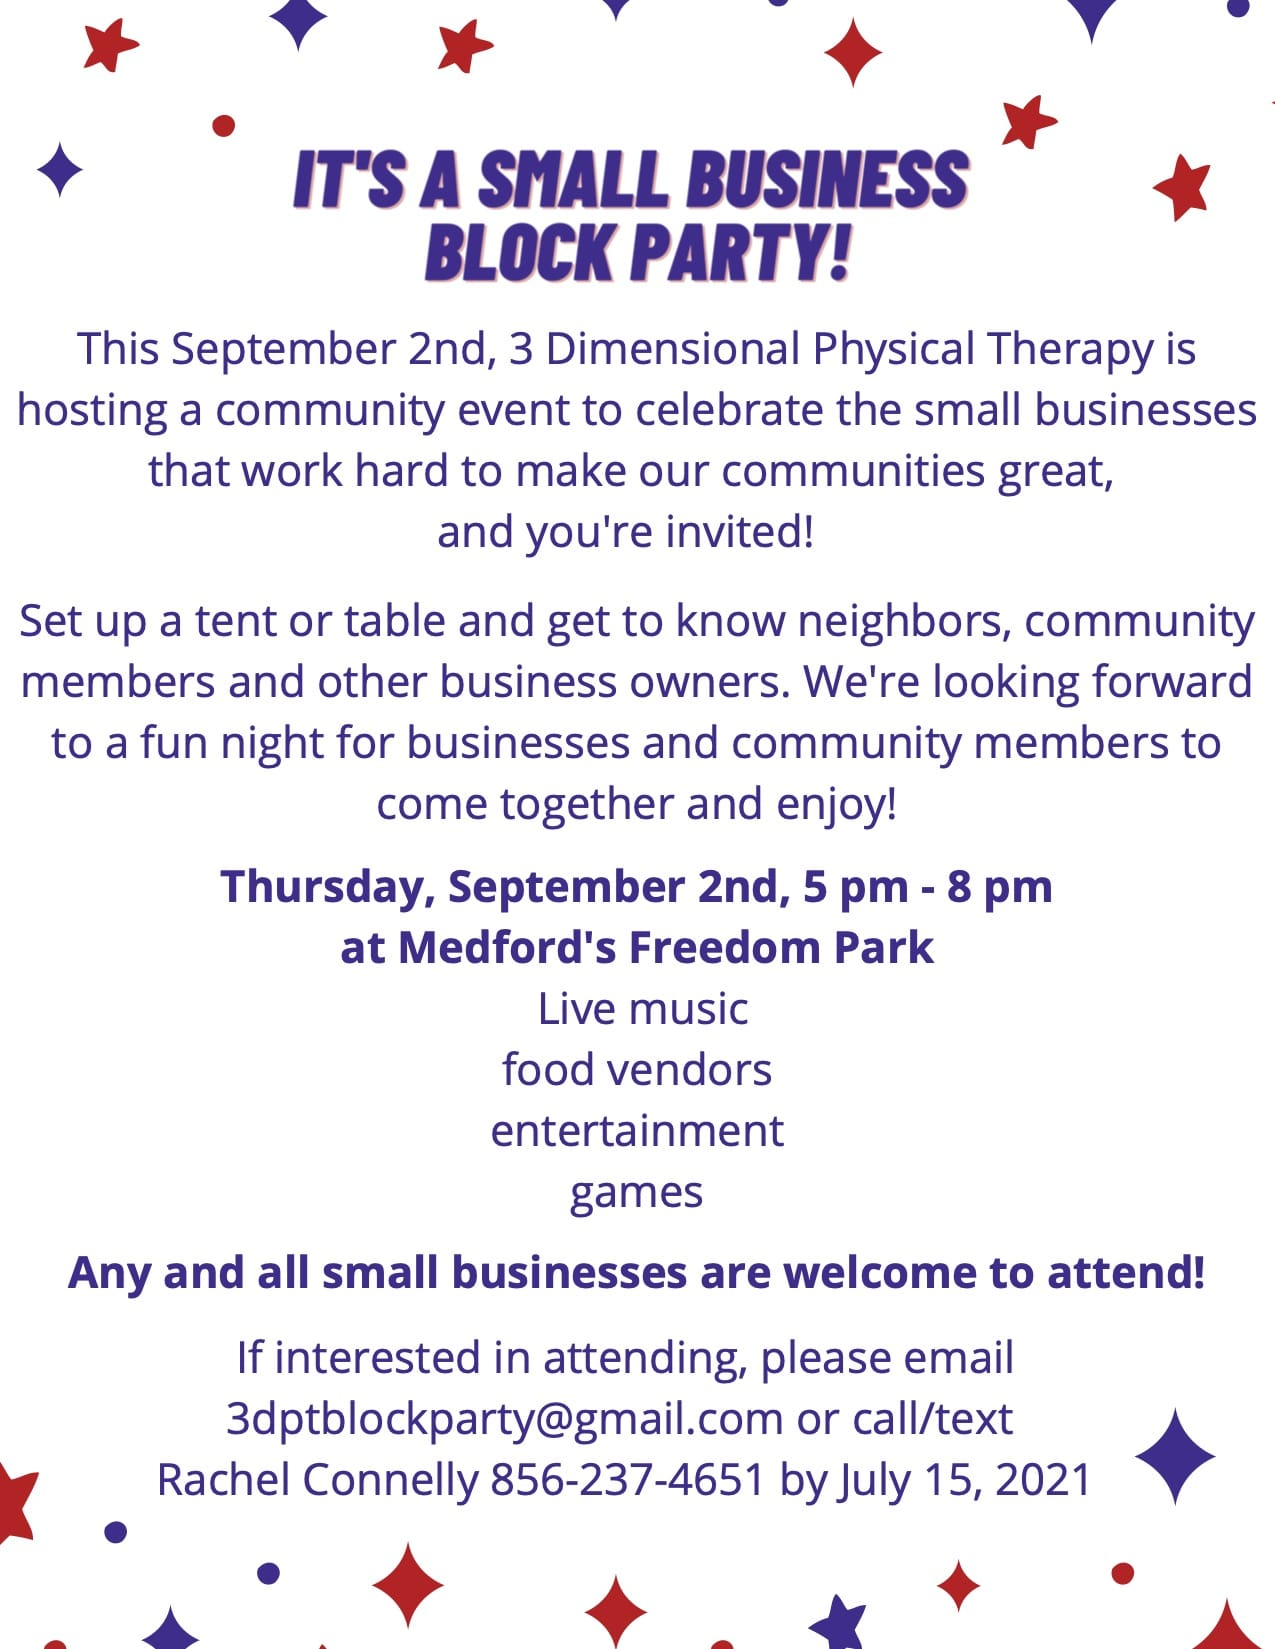 small business community event 9.2.21